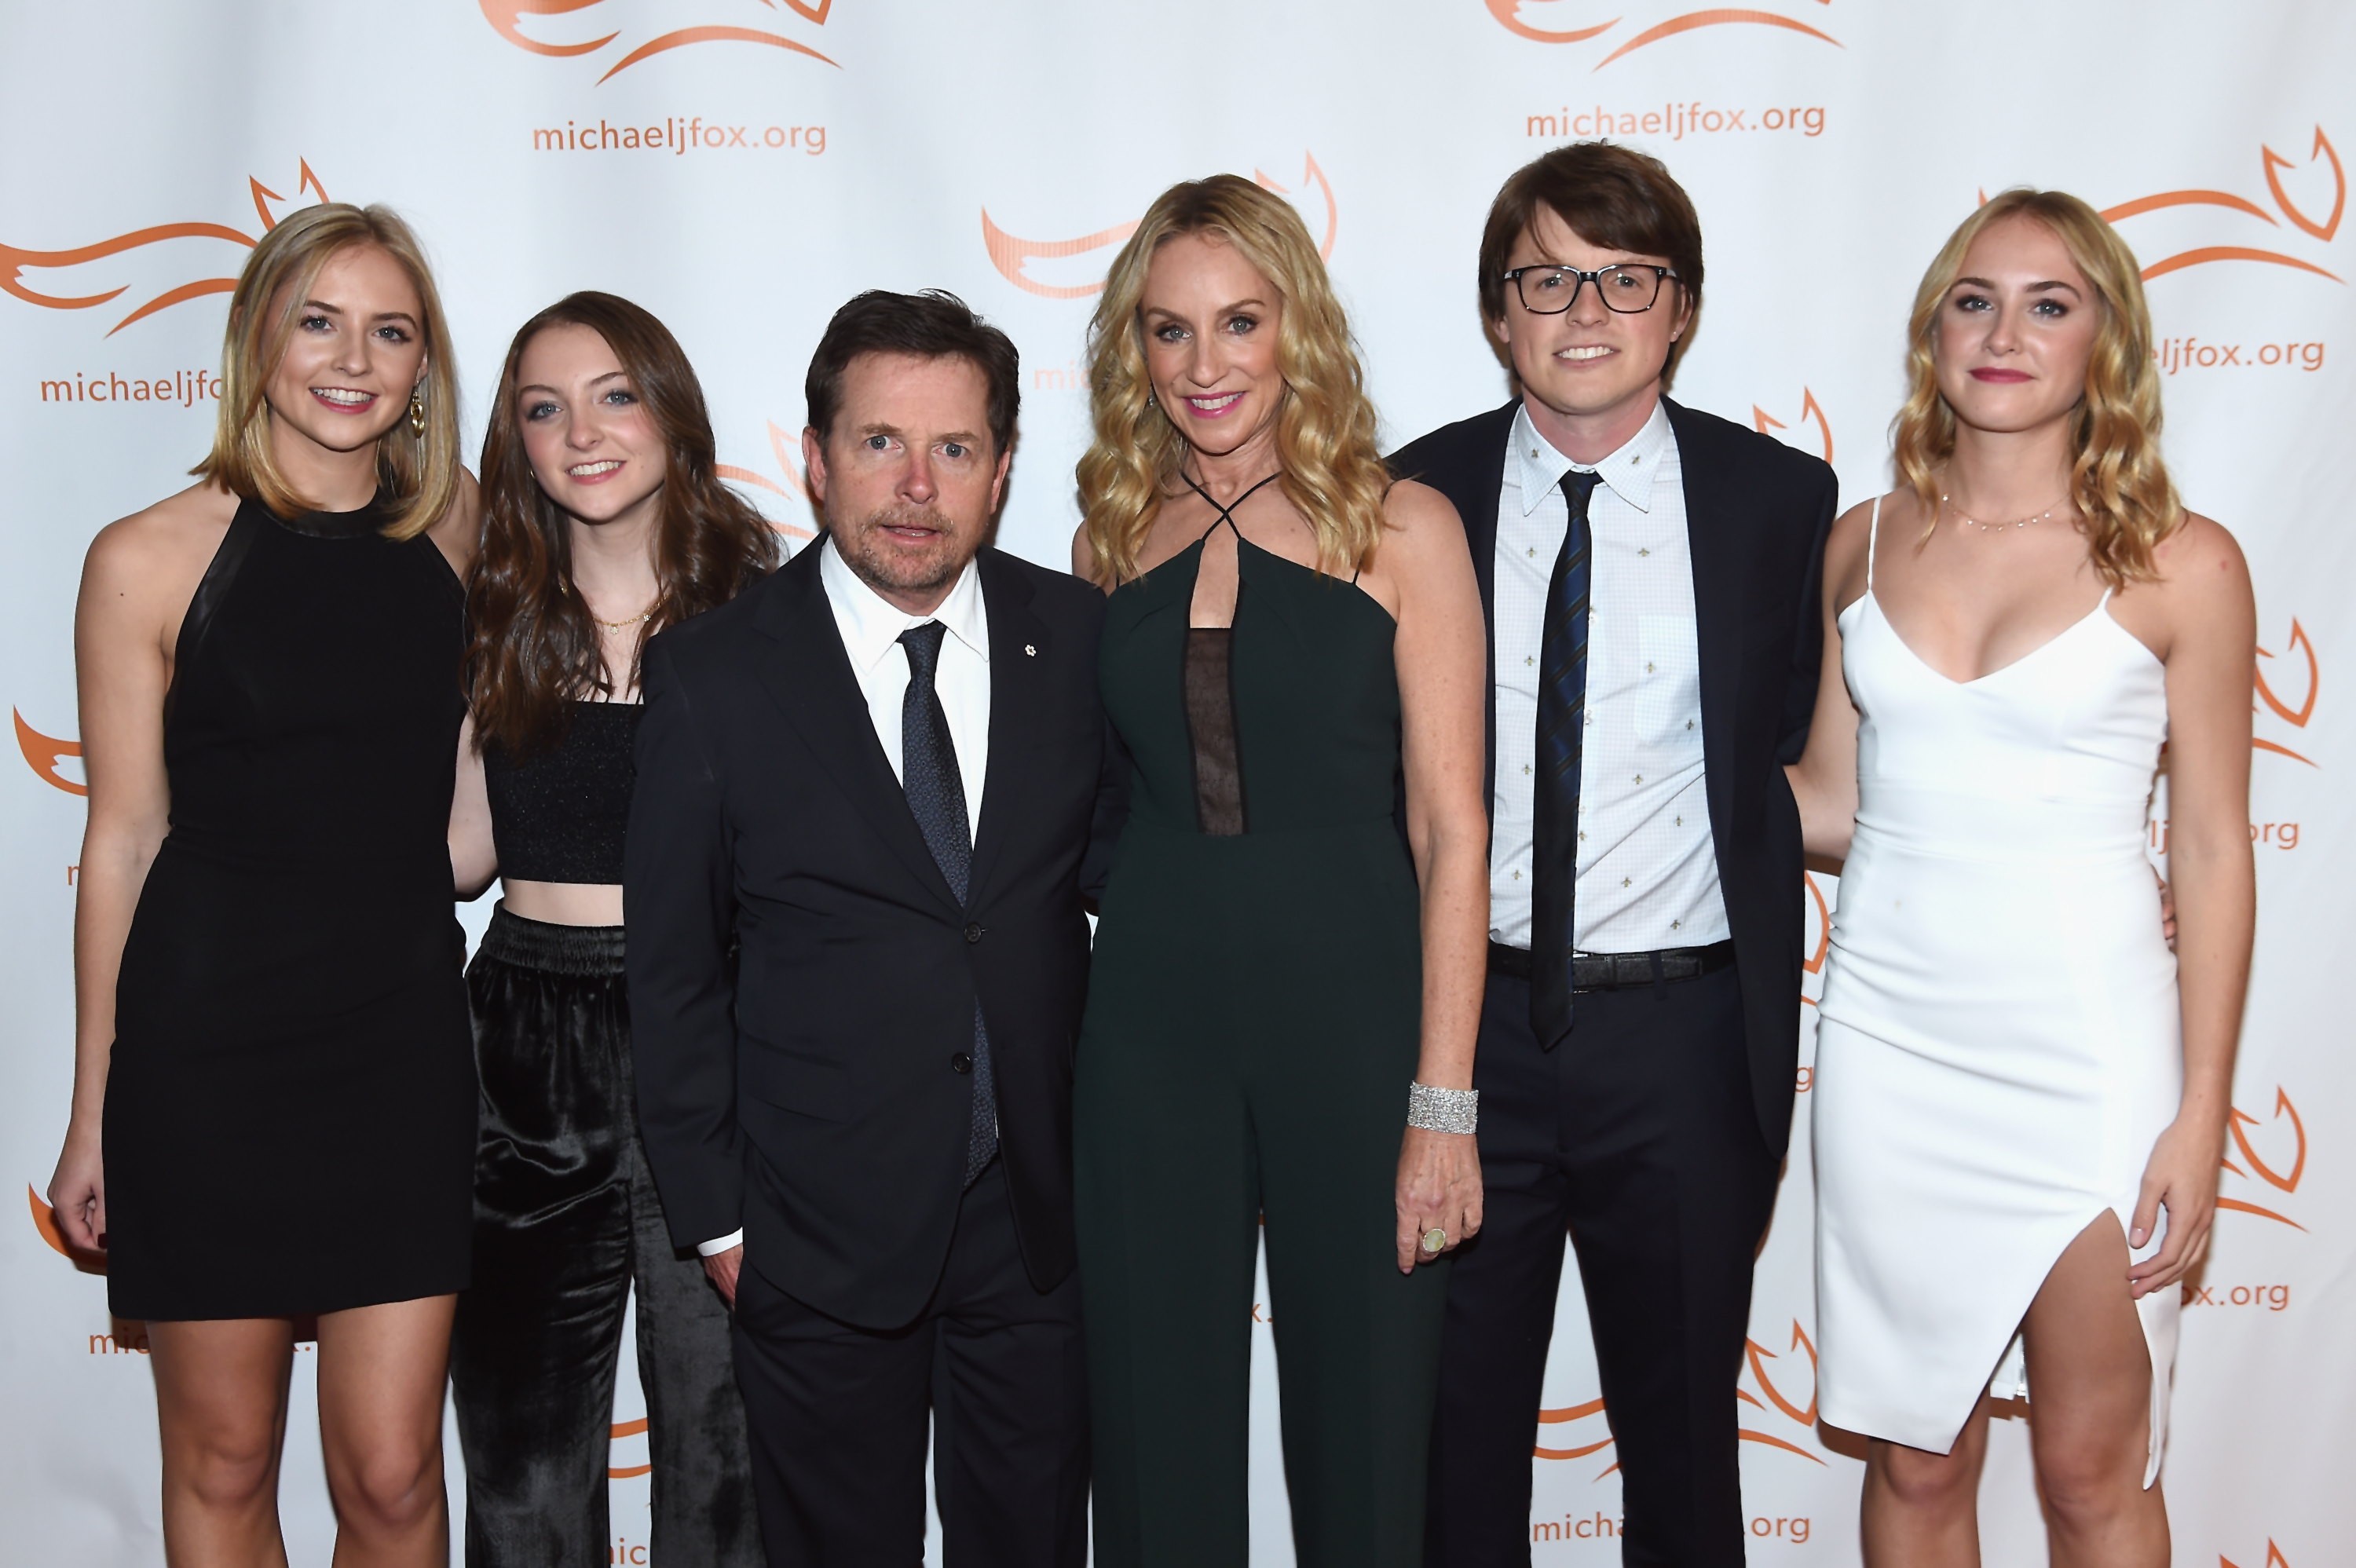 Schuyler Frances Fox, Esmé Annabelle Fox, Sam Michael Fox, Michael J. Fox, Tracy Pollan and Aquinnah Kathleen Fox (Source: Getty Images)